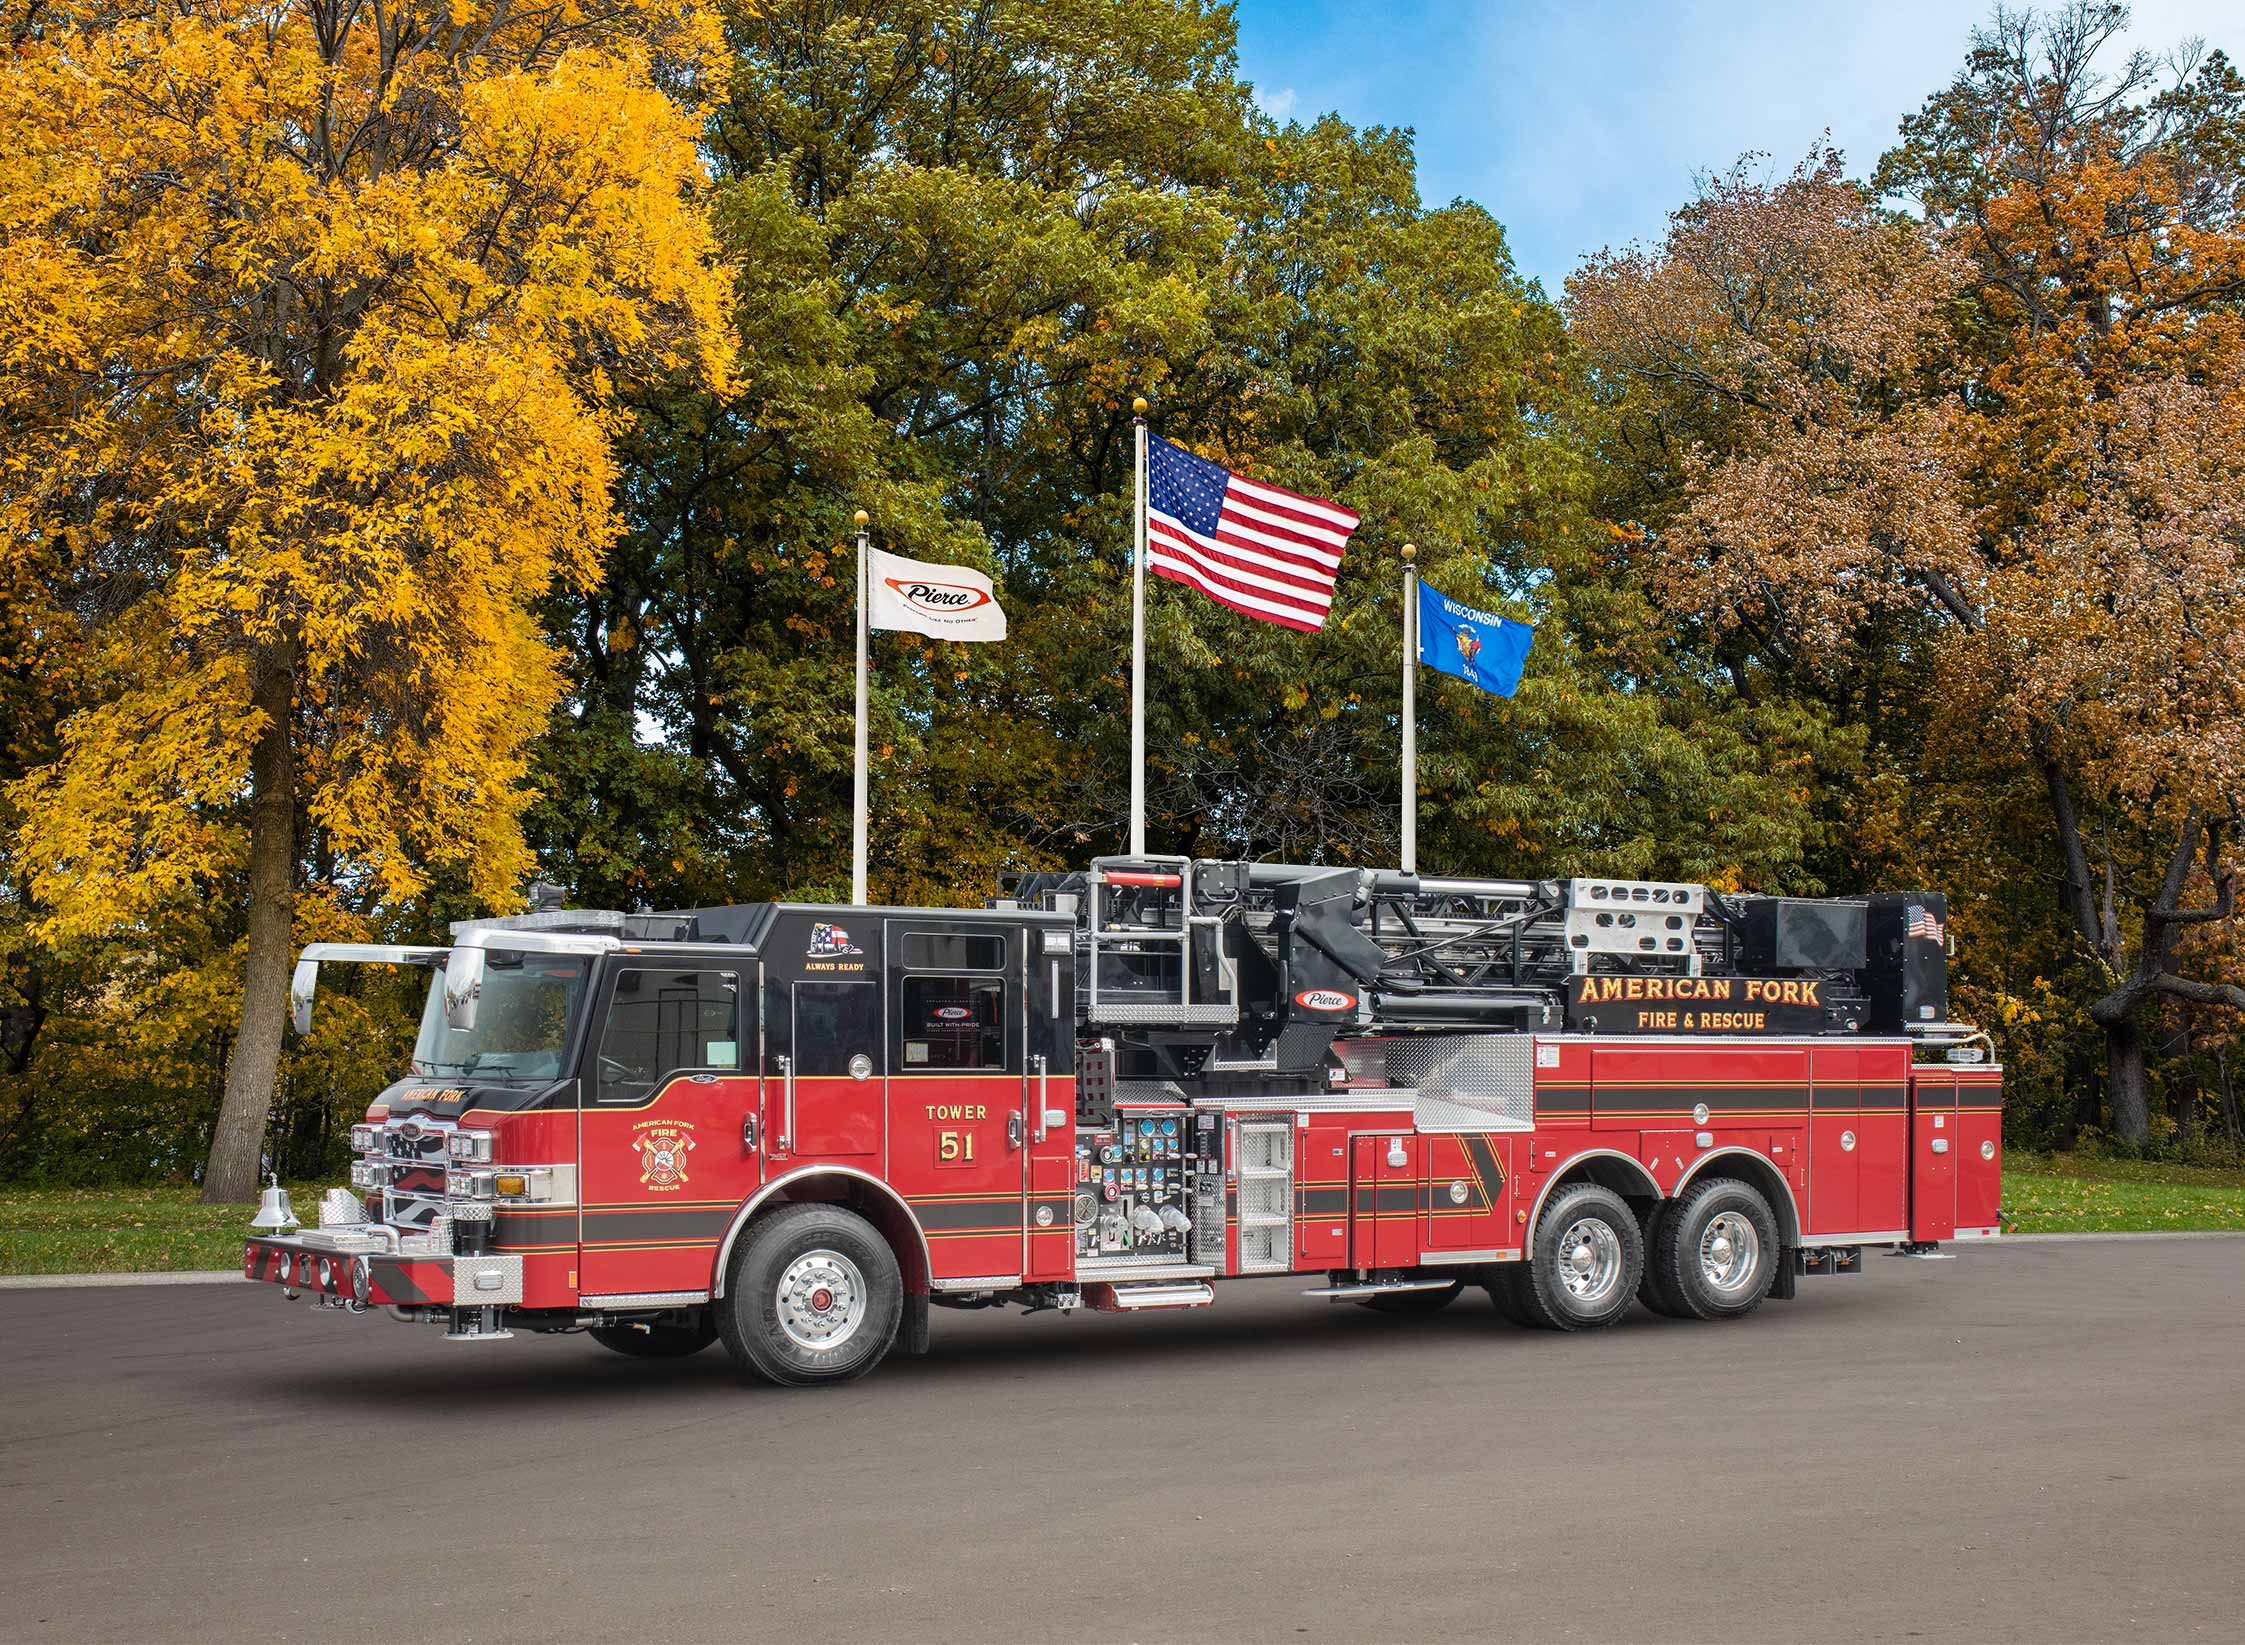 American Fork Fire & Rescue - Aerial